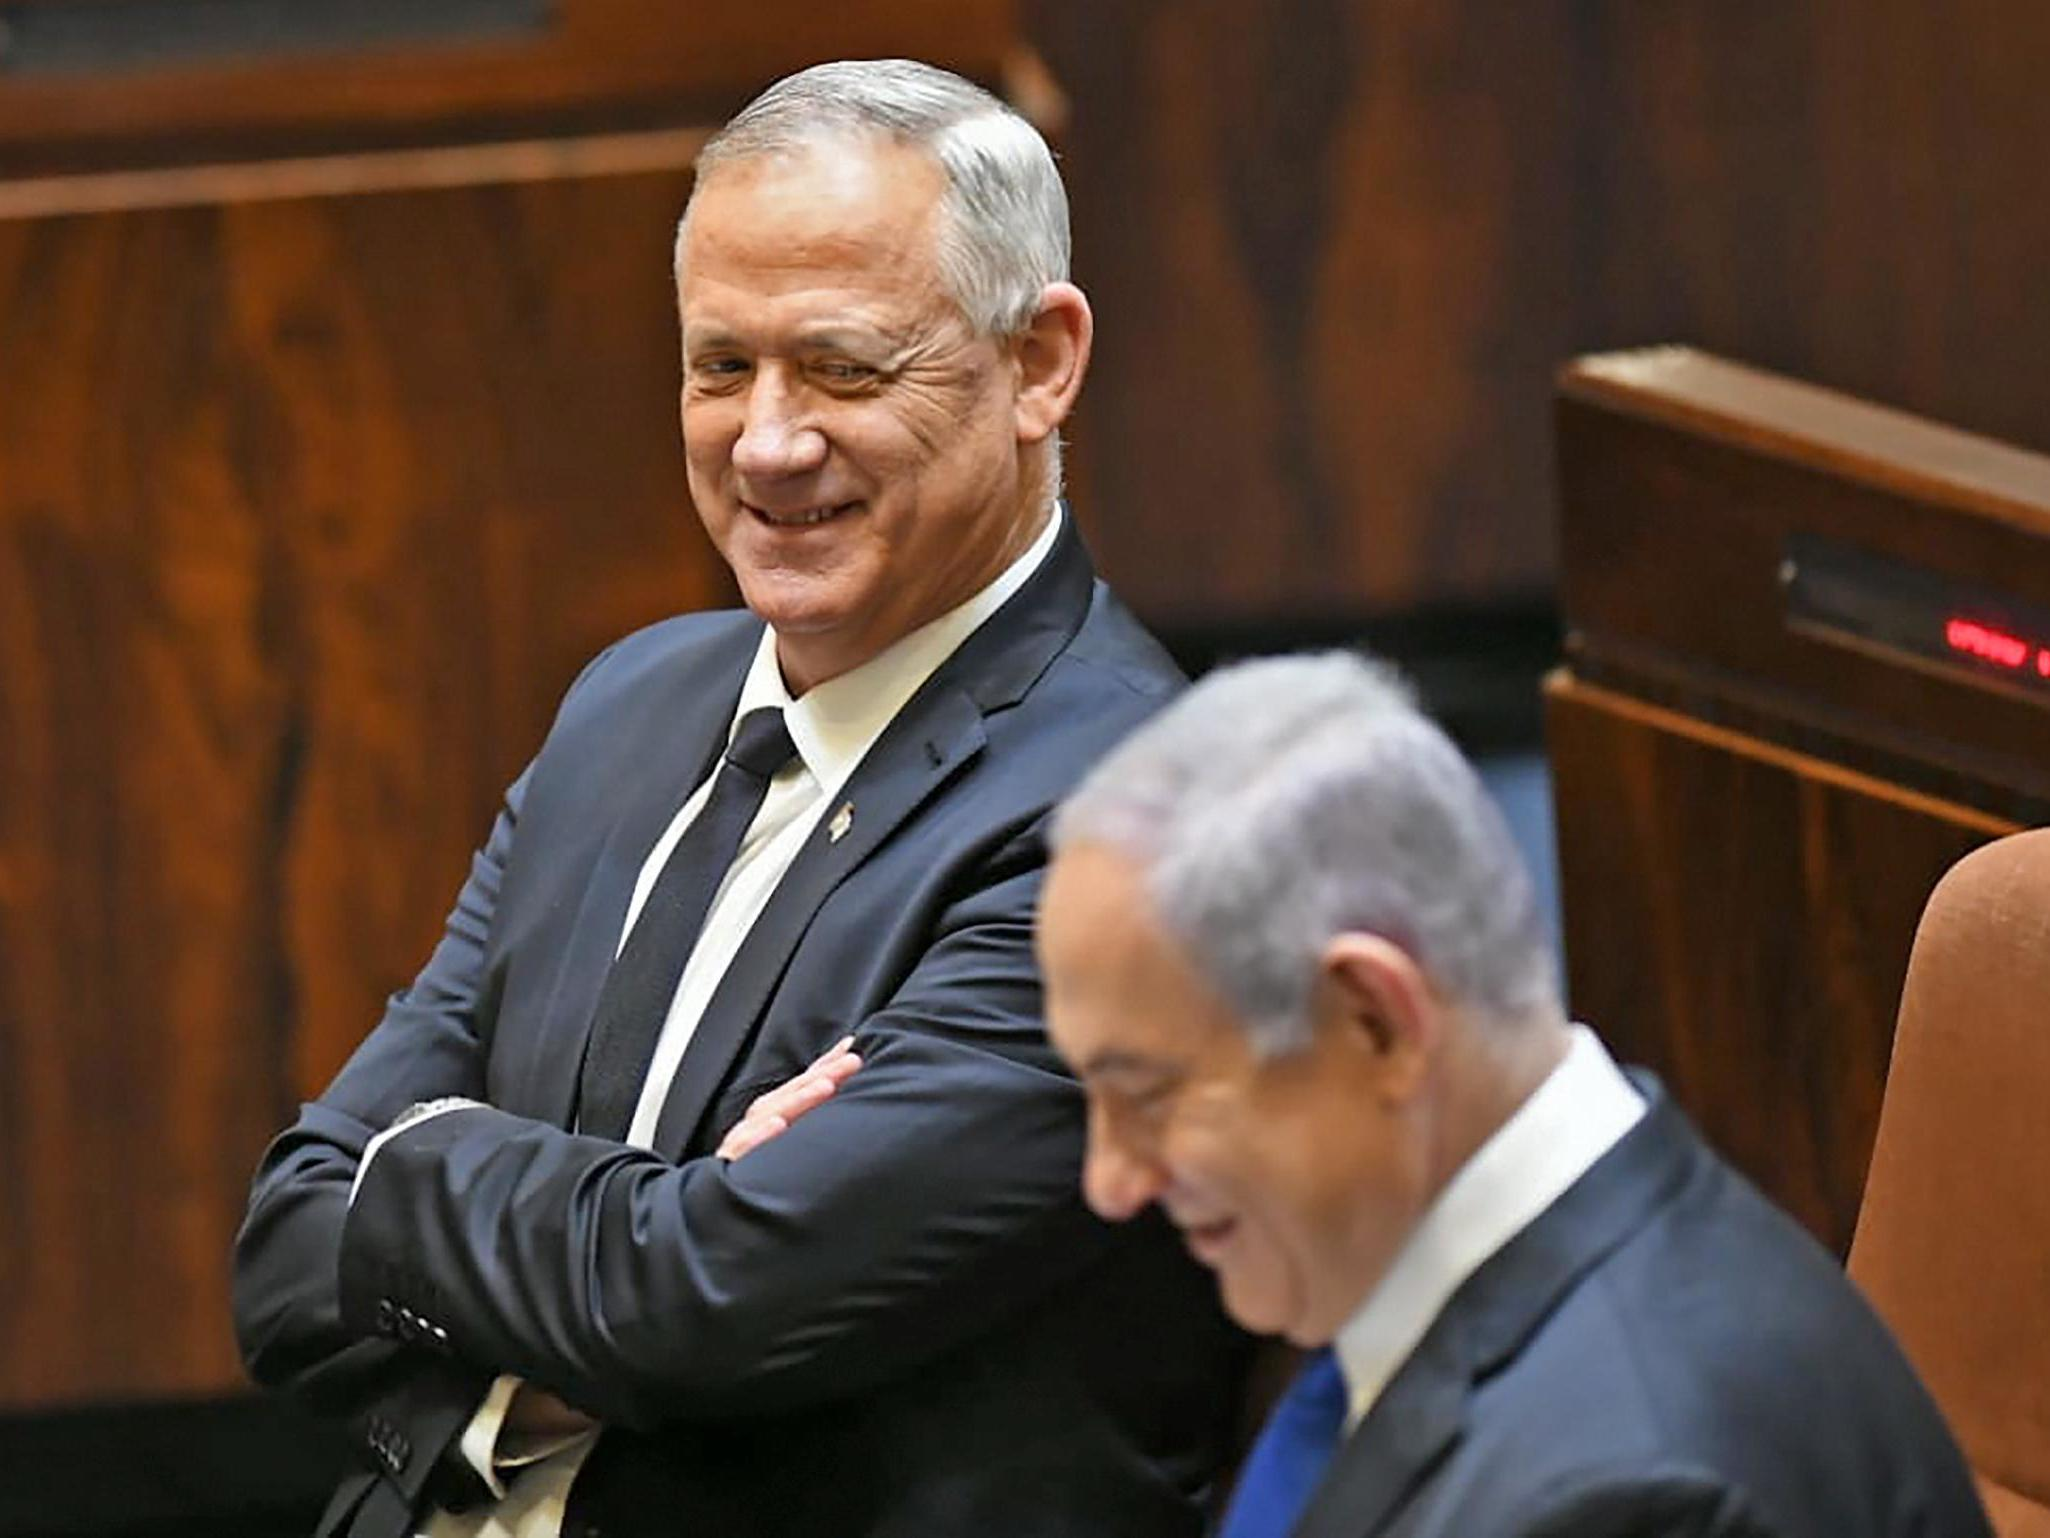 New Israeli government finally sworn in after power-sharing deal struck